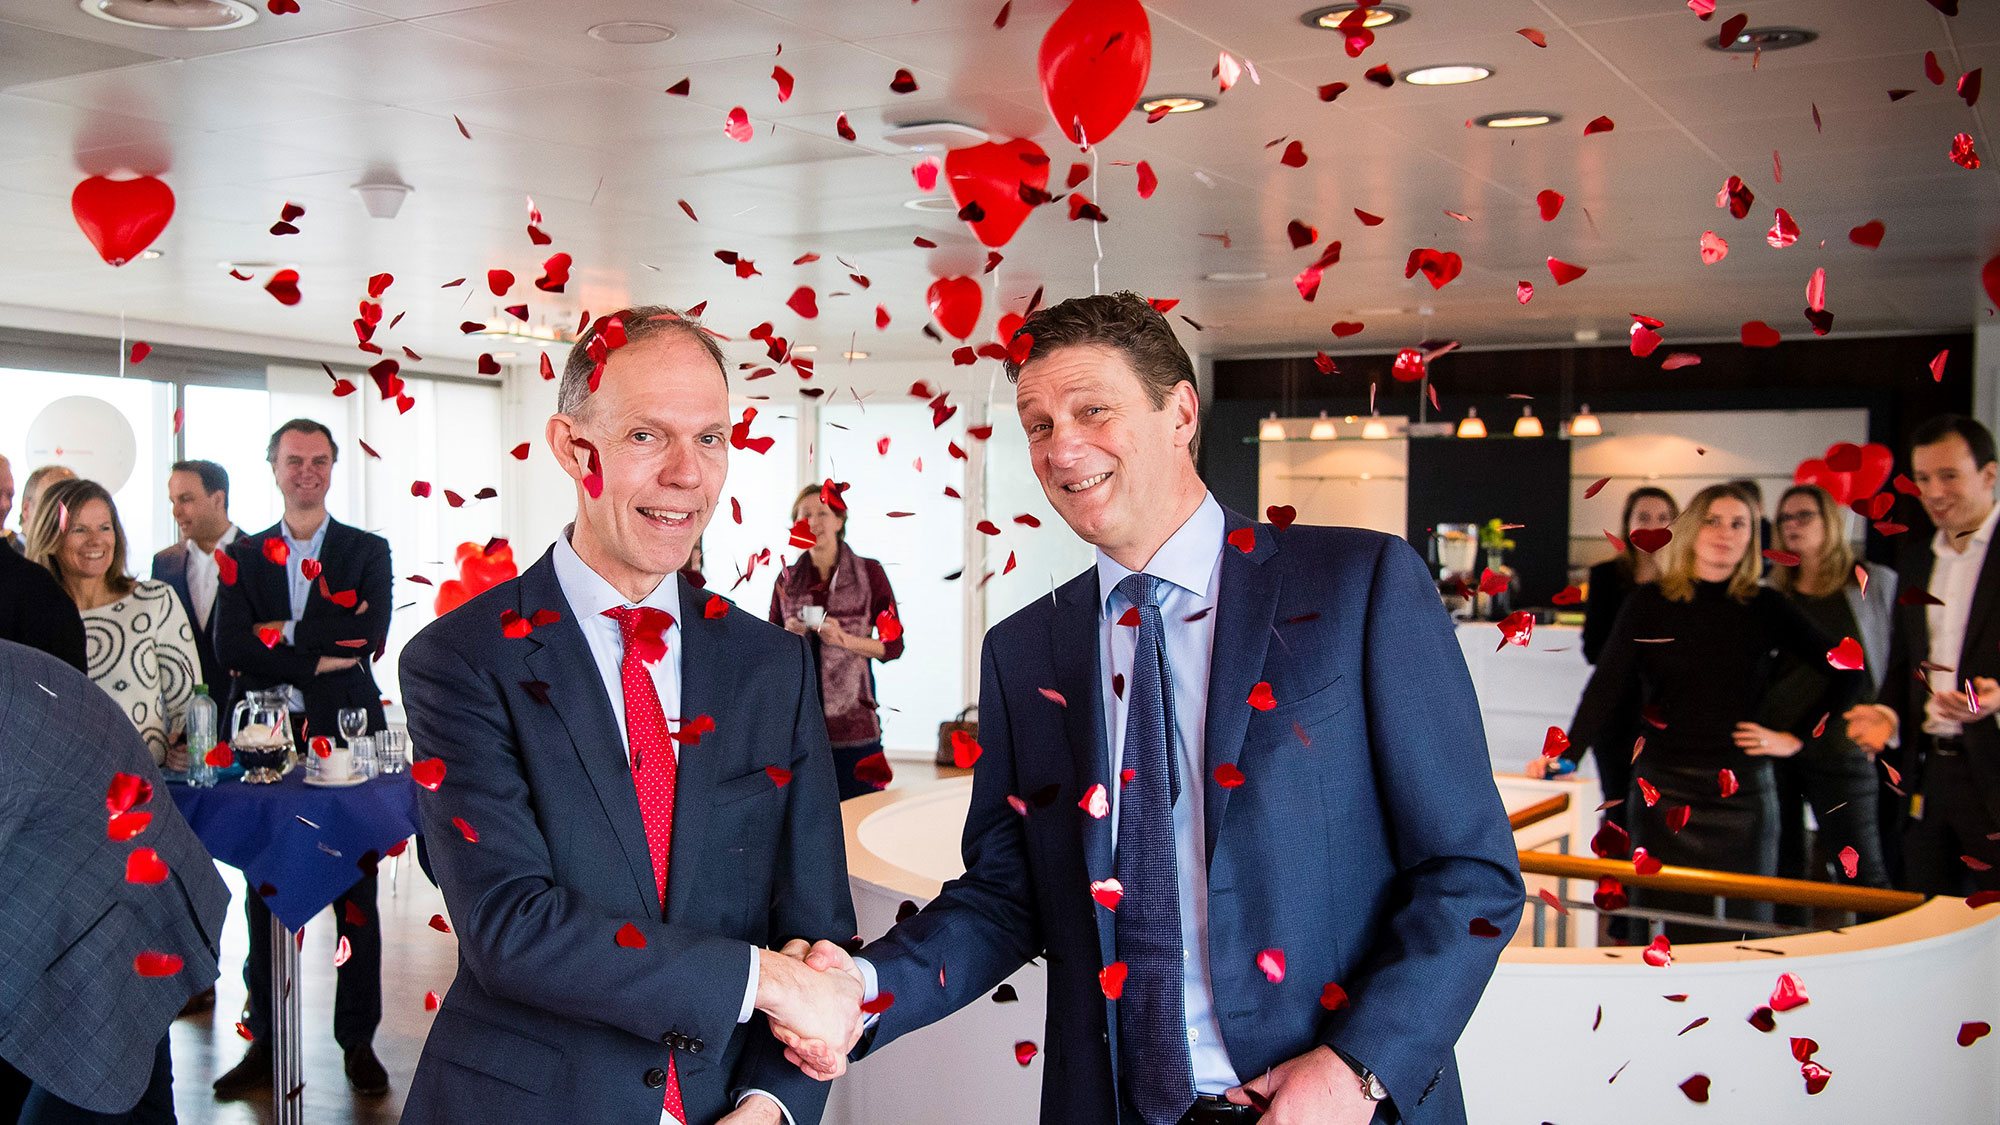 Philips and the Dutch Heart Foundation join forces to promote heart health in the Netherlands